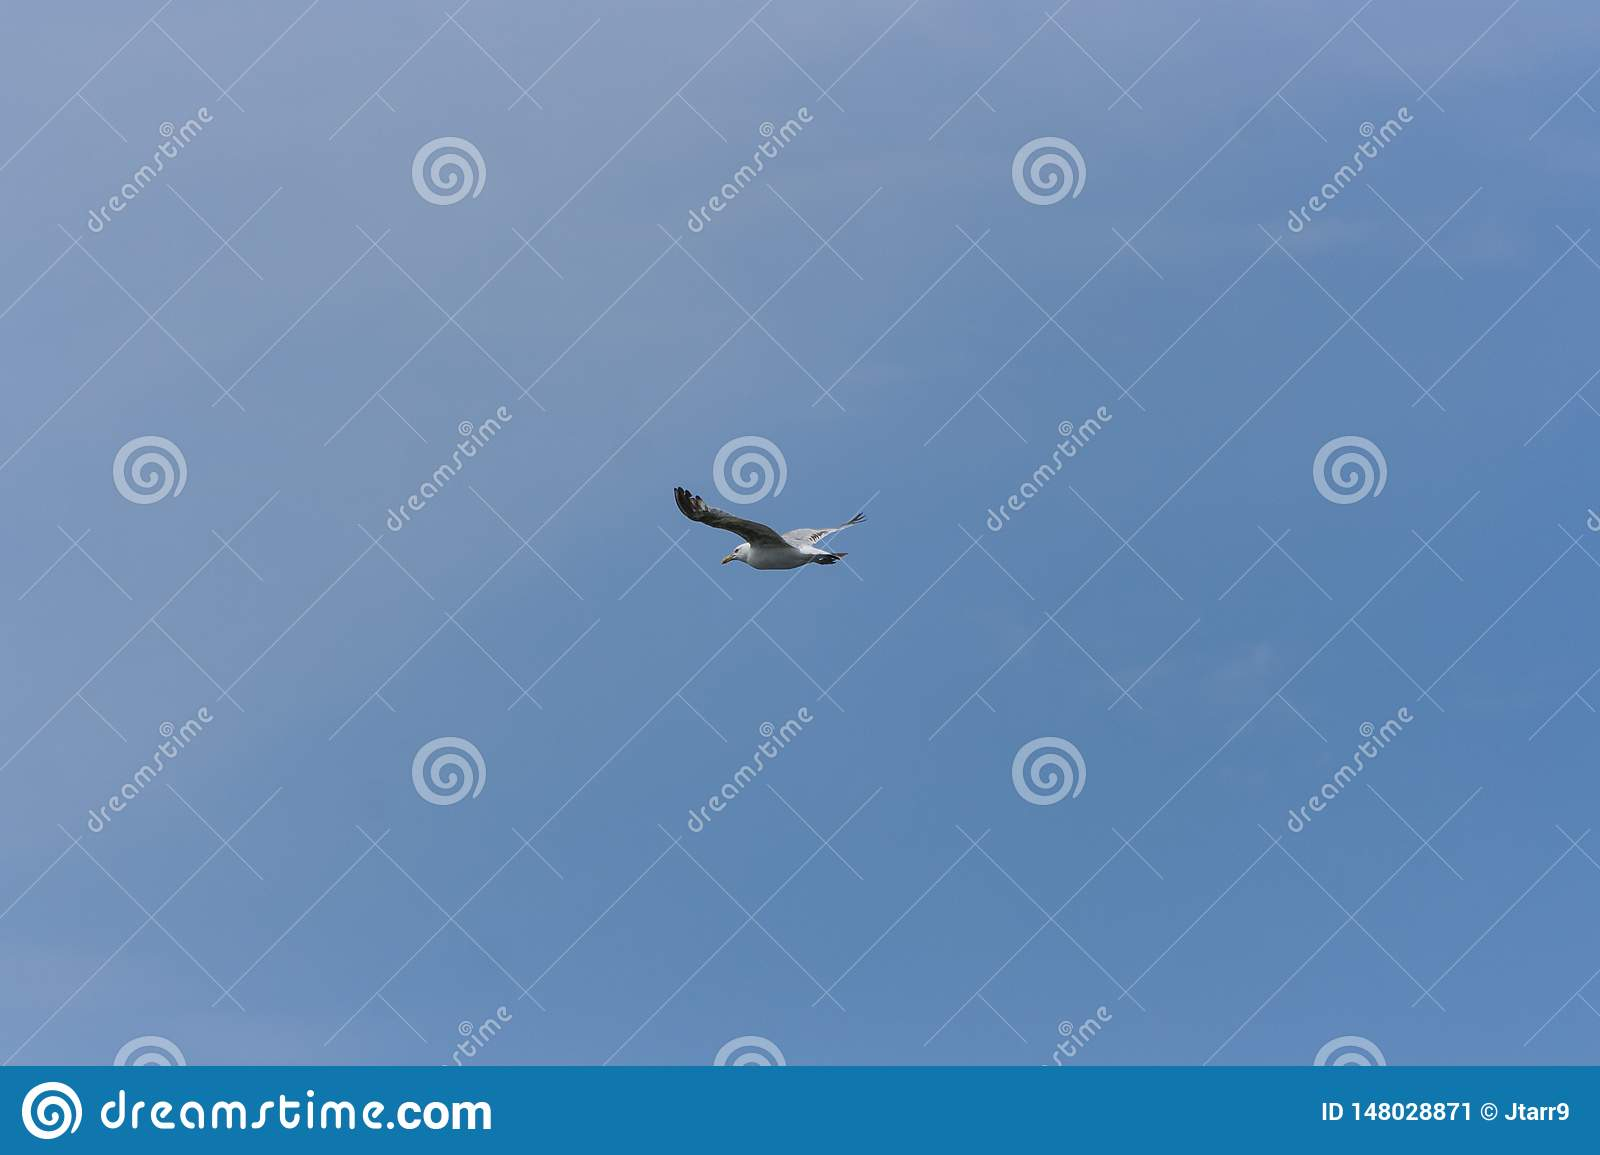 Lone Seagull on Clear Blue Sky